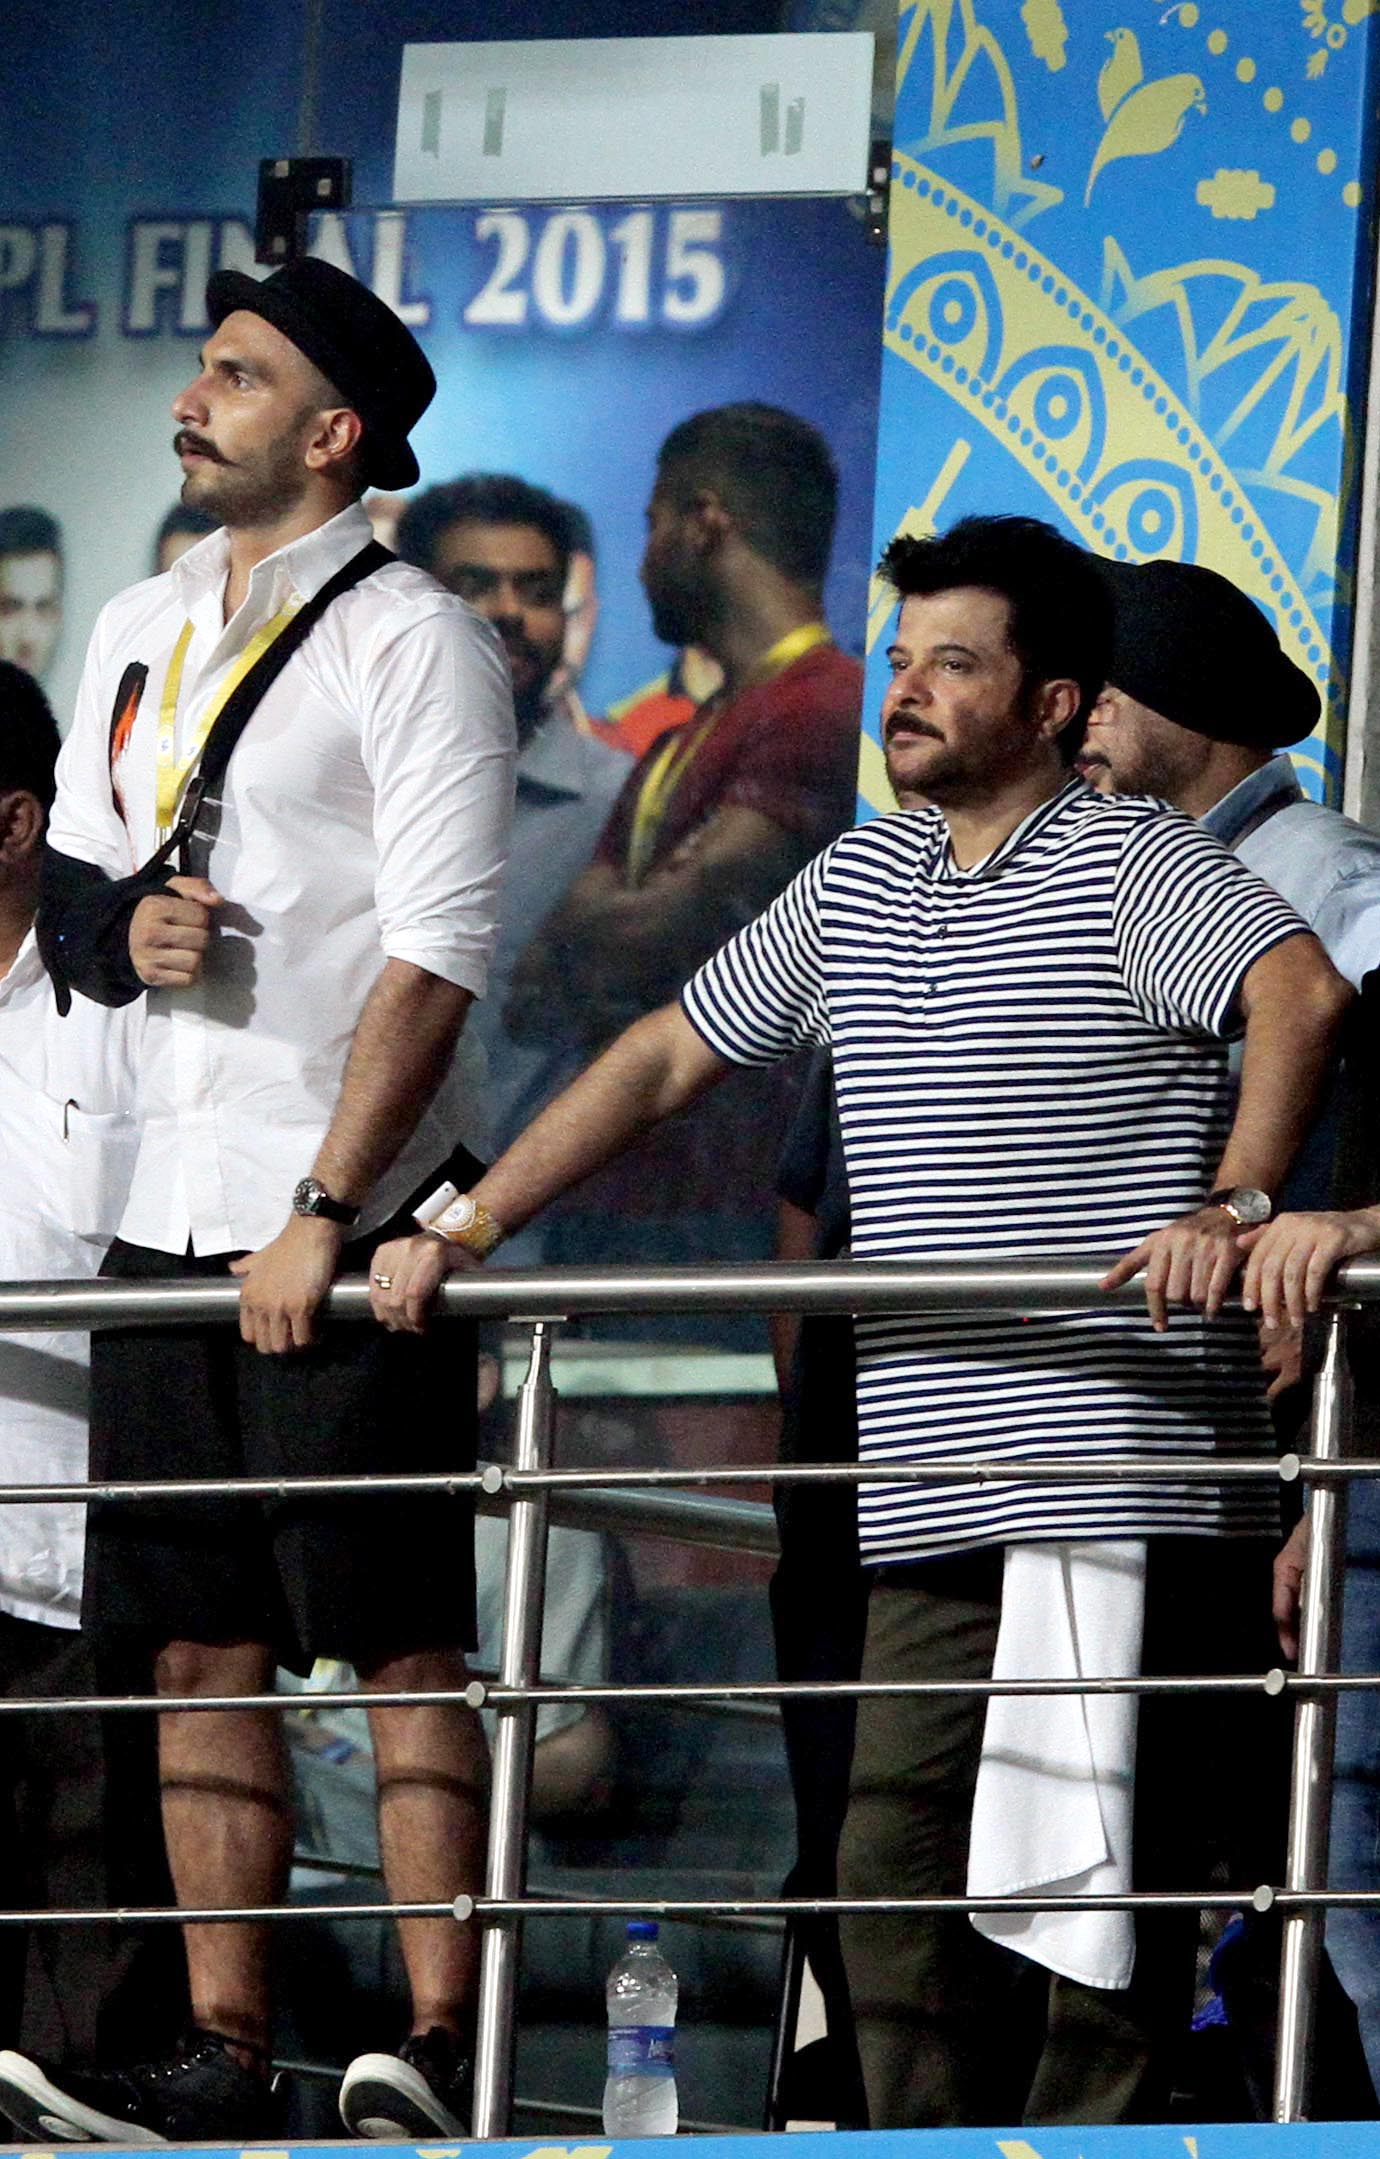 Celebs: Glitz and glamour with Ranveer Singh at IPL final, celebrations to continue in Mumbai